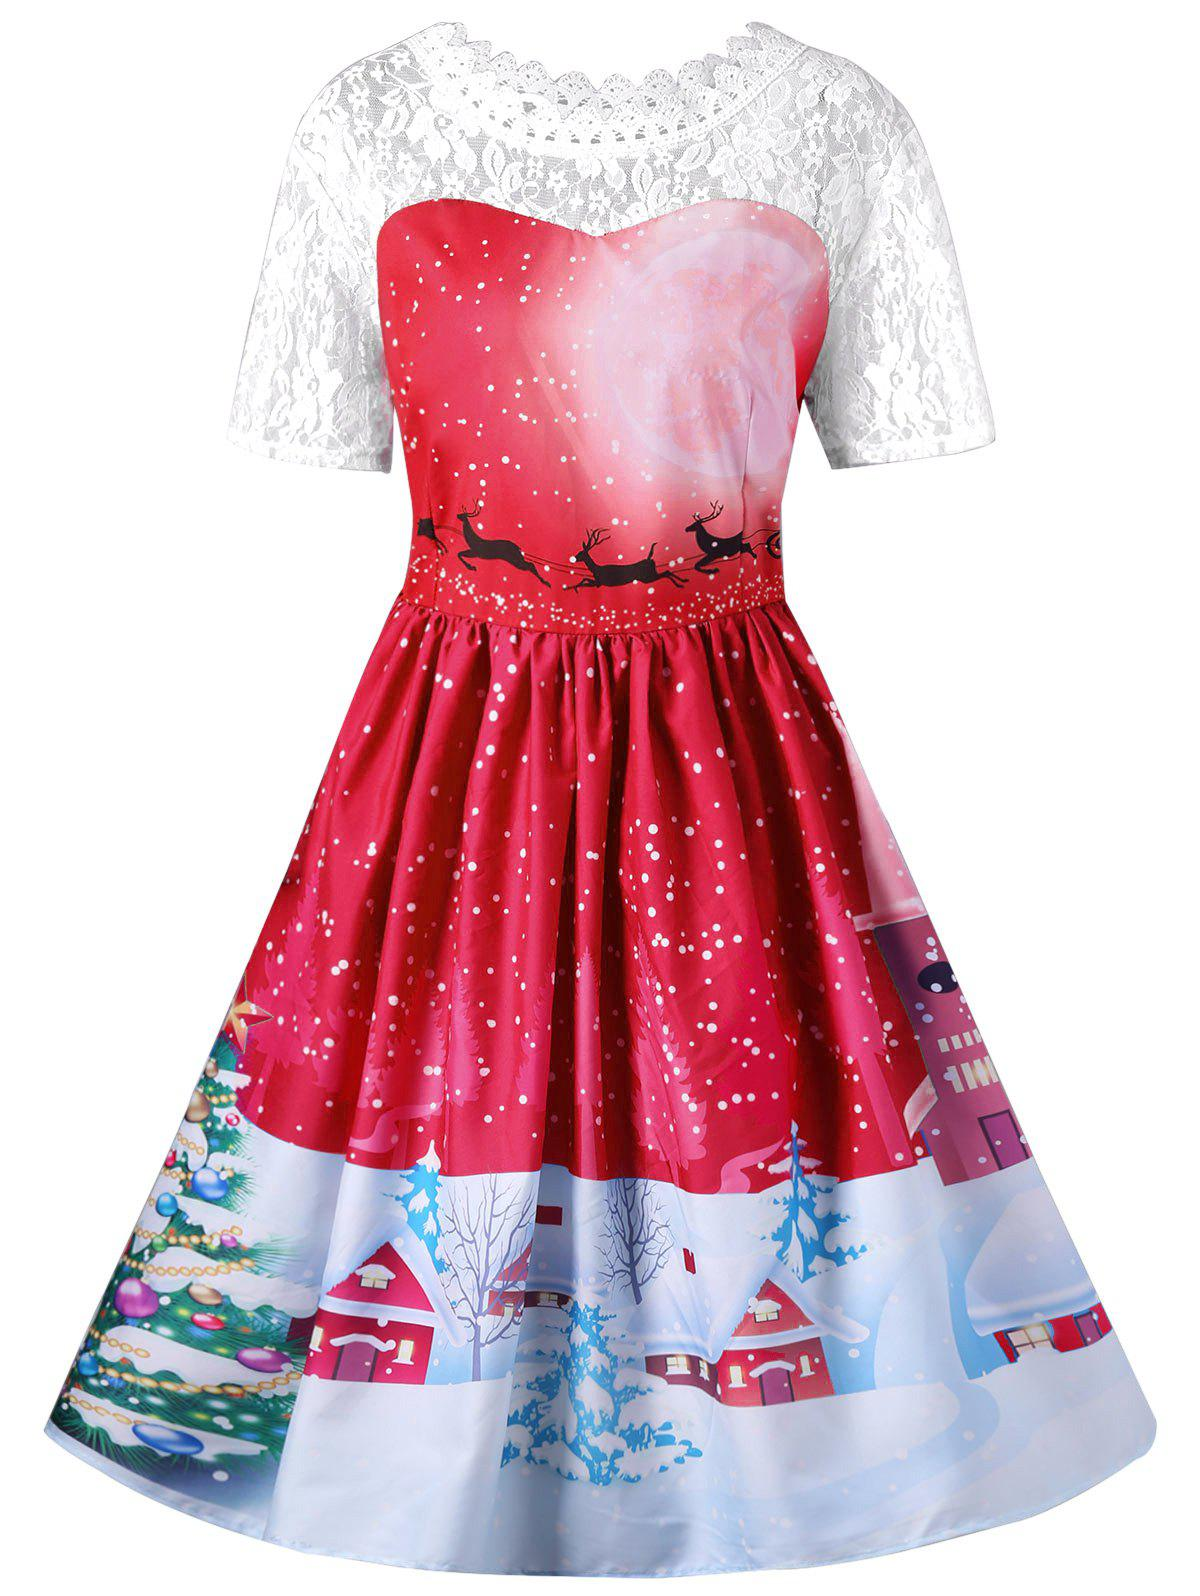 Vintage Christmas Graphic Lace Yoke Swing DressWOMEN<br><br>Size: L; Color: RED; Style: Vintage; Material: Polyester,Spandex; Silhouette: A-Line; Dresses Length: Knee-Length; Neckline: Round Collar; Sleeve Length: Short Sleeves; Embellishment: Lace; Pattern Type: Animal; With Belt: No; Season: Fall,Spring; Weight: 0.3100kg; Package Contents: 1 x Dress;